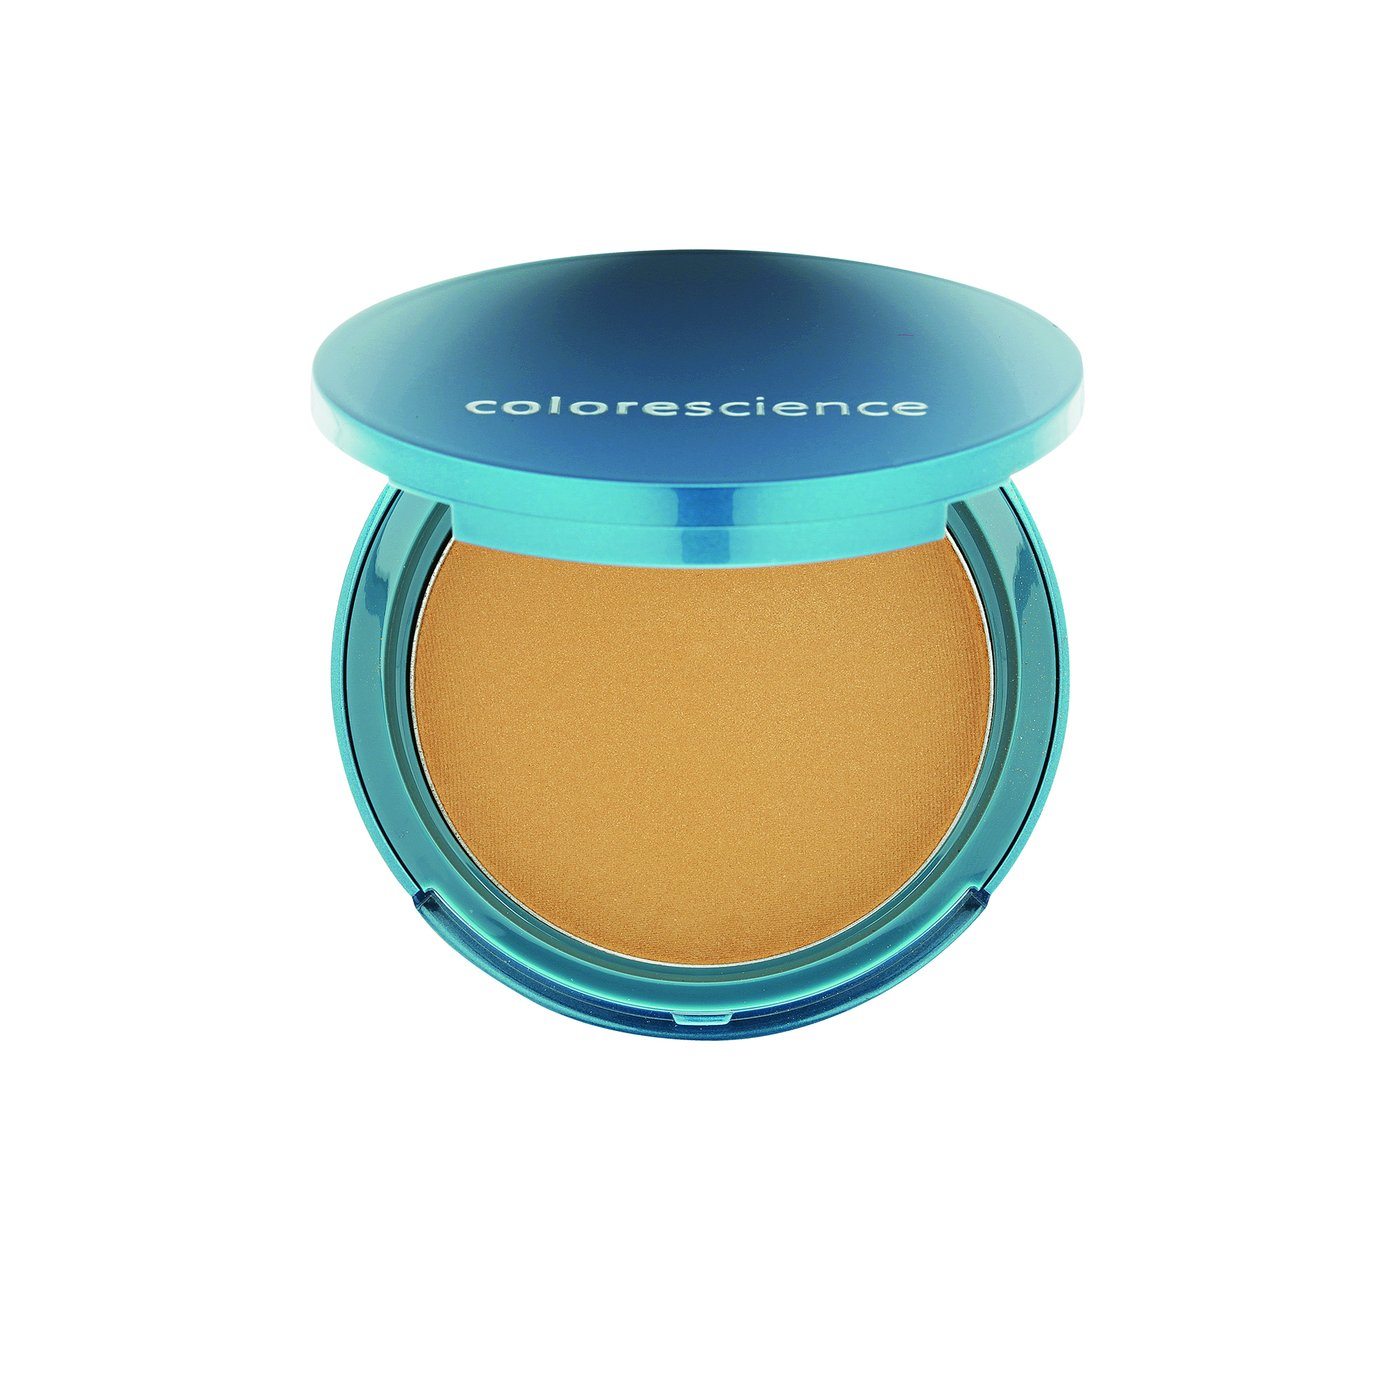 Colorescience Pressed Mineral Foundation Medium Tan Natural